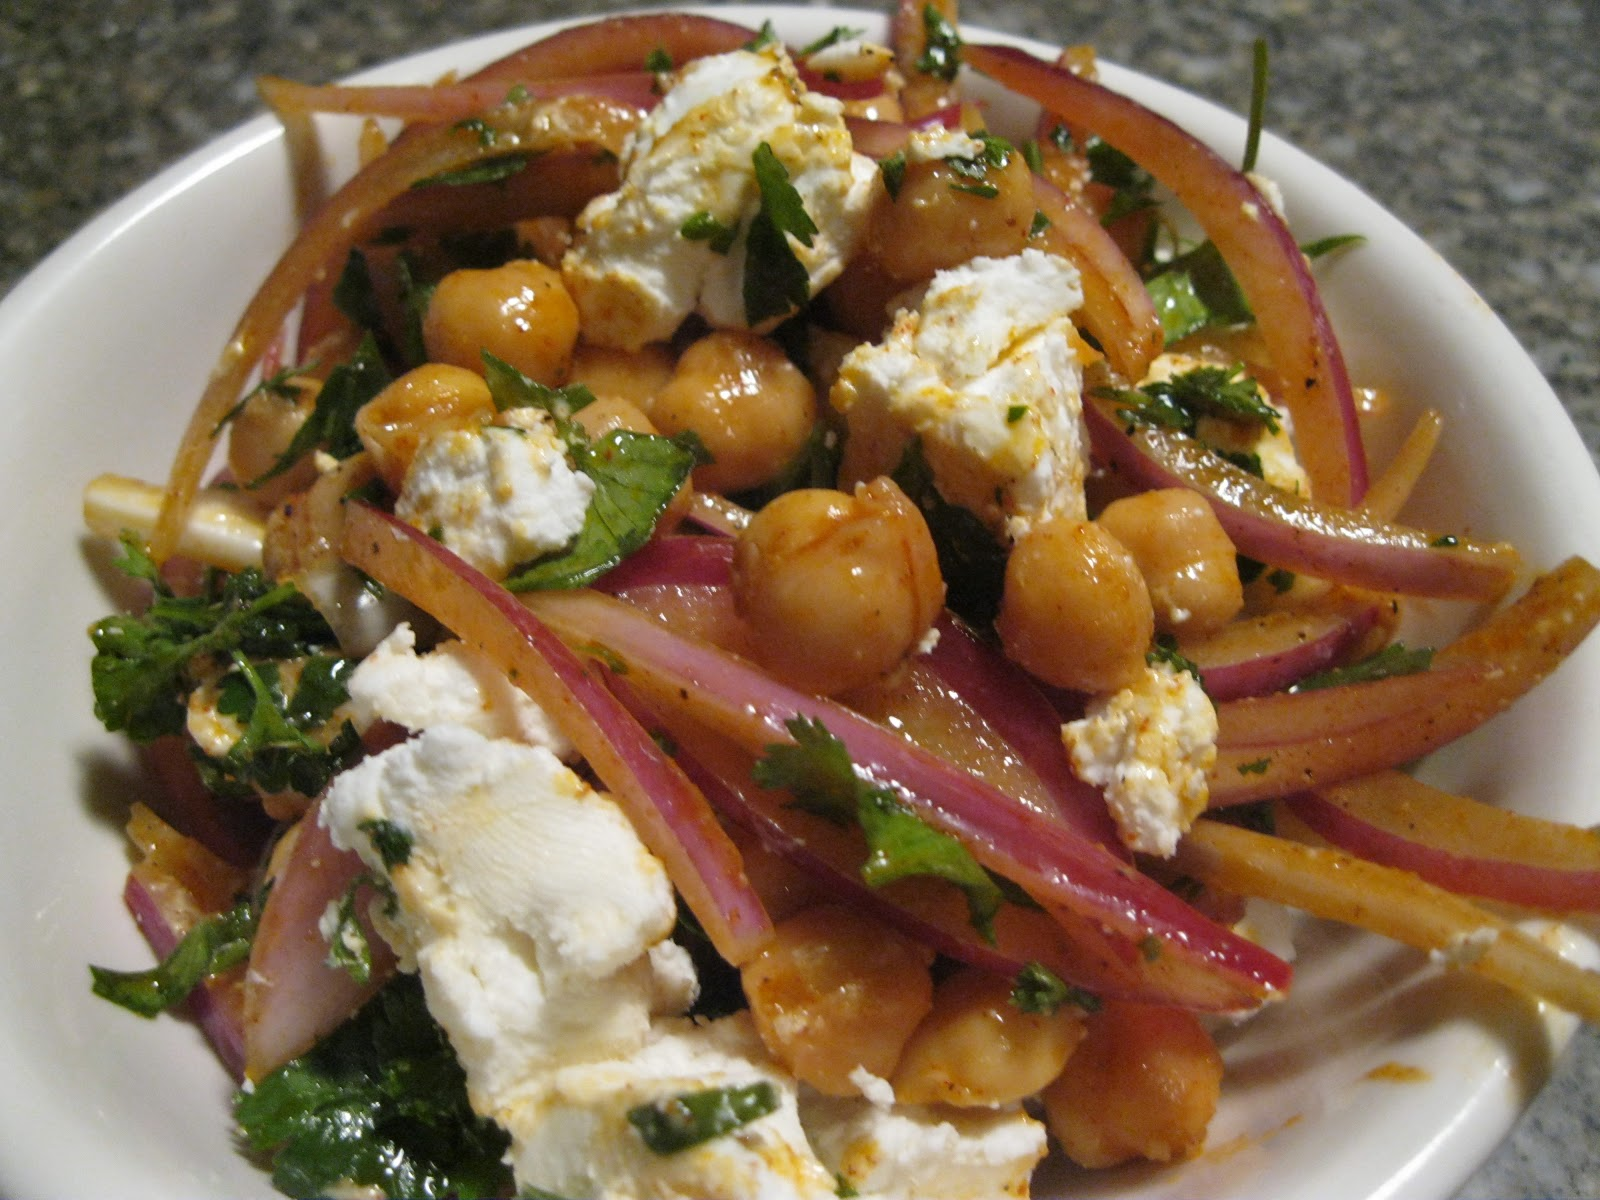 ... Tomatoes Until They're Picked: Chickpea Salad with Onions and Paprika